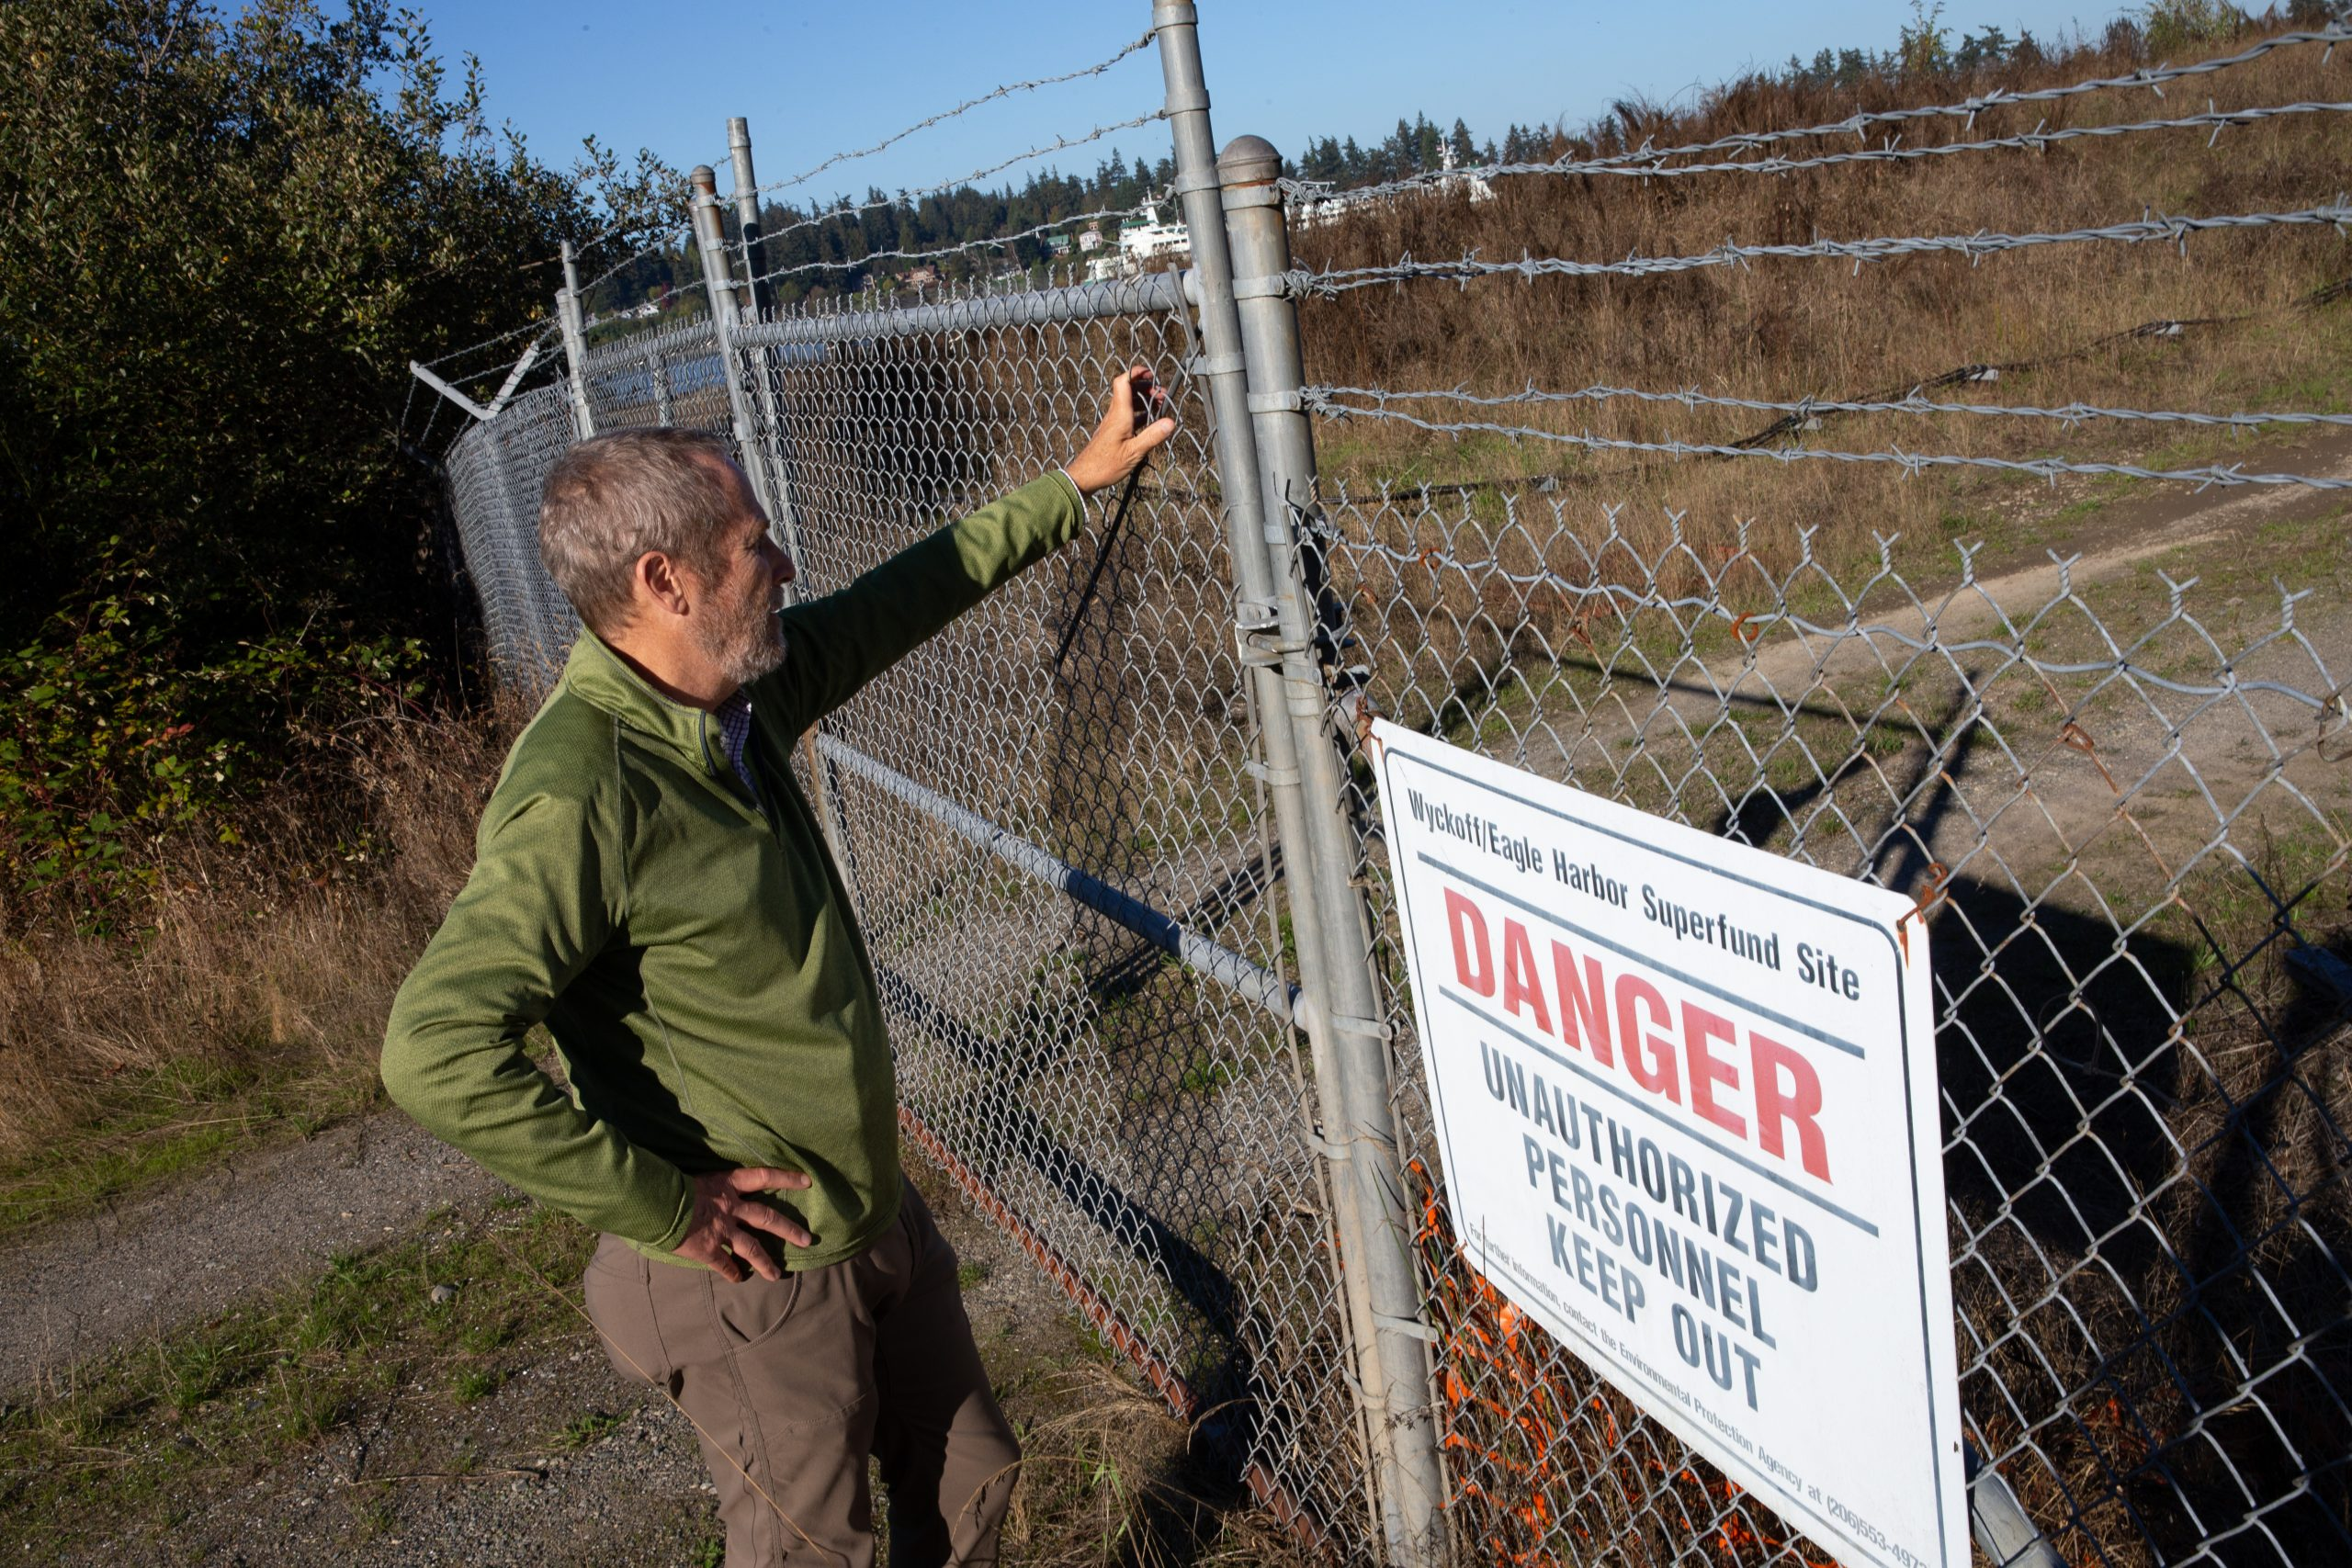 Michael Cox, a former EPA climate expert for the Pacific Northwest, looks into the Wyckoff/Eagle Harbor Superfund site on Bainbridge Island, Washington on Oct. 6, 2020. Credit: Karen Ducey